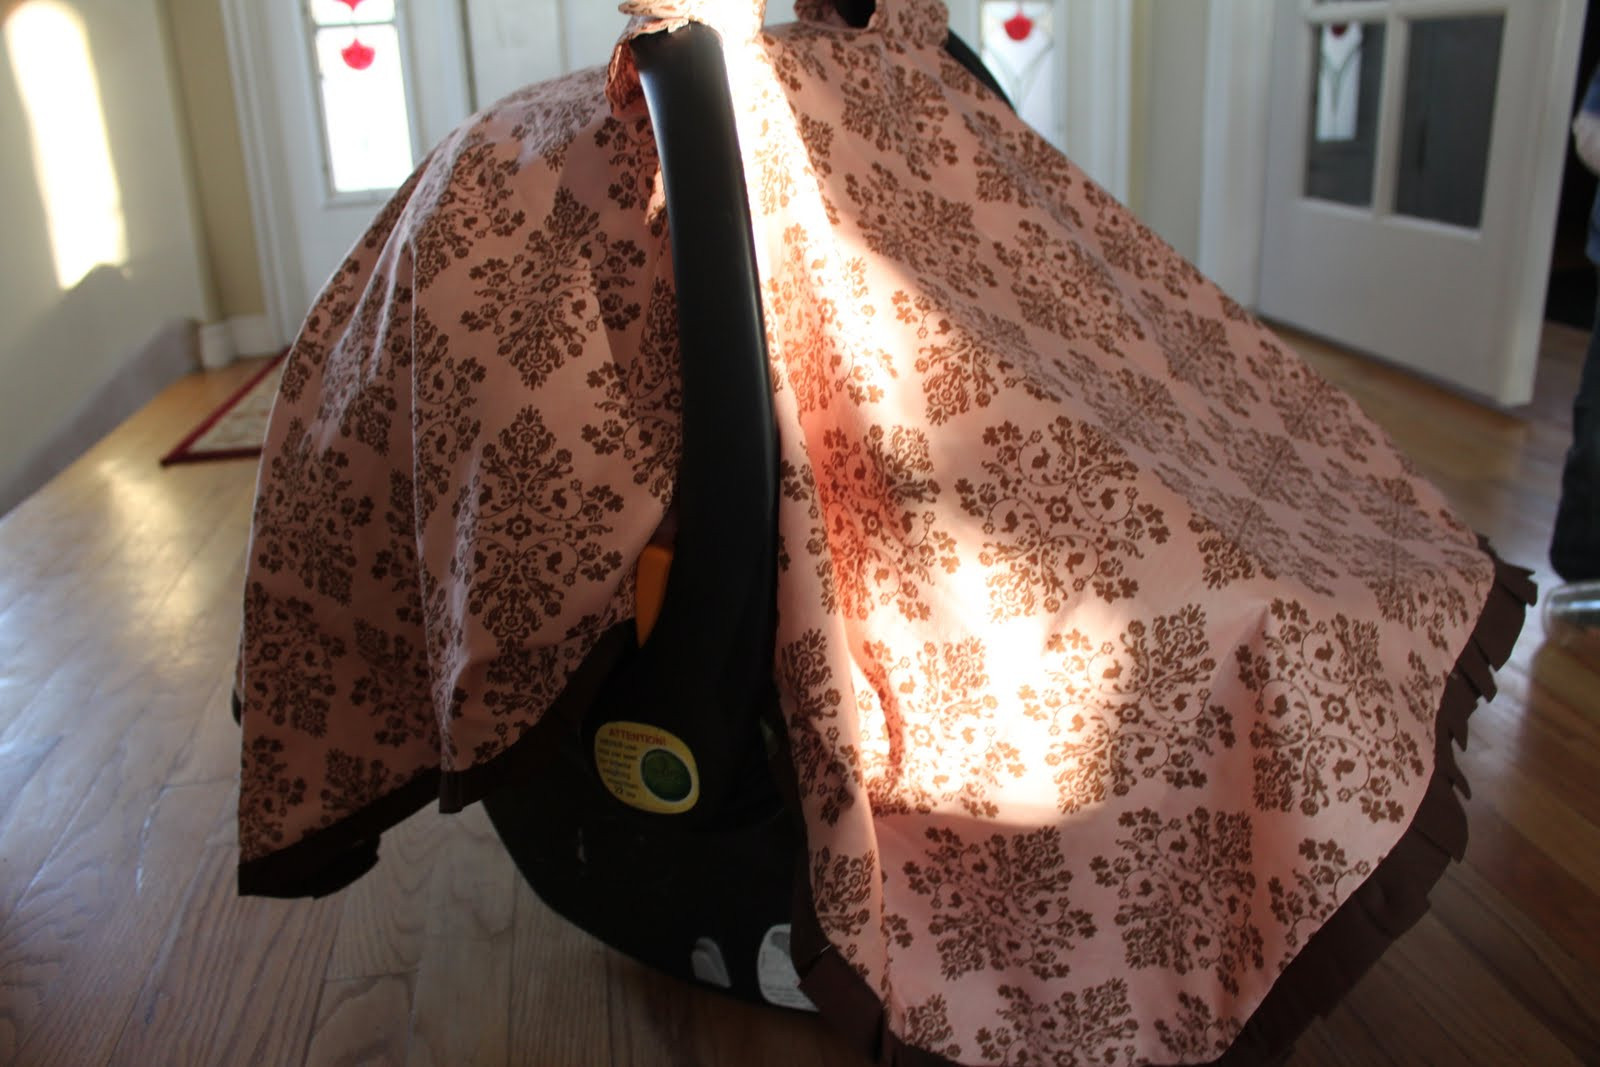 Best ideas about DIY Baby Car Seat Cover . Save or Pin do it yourself divas DIY Baby Car Seat Tent Cover Canopy Now.